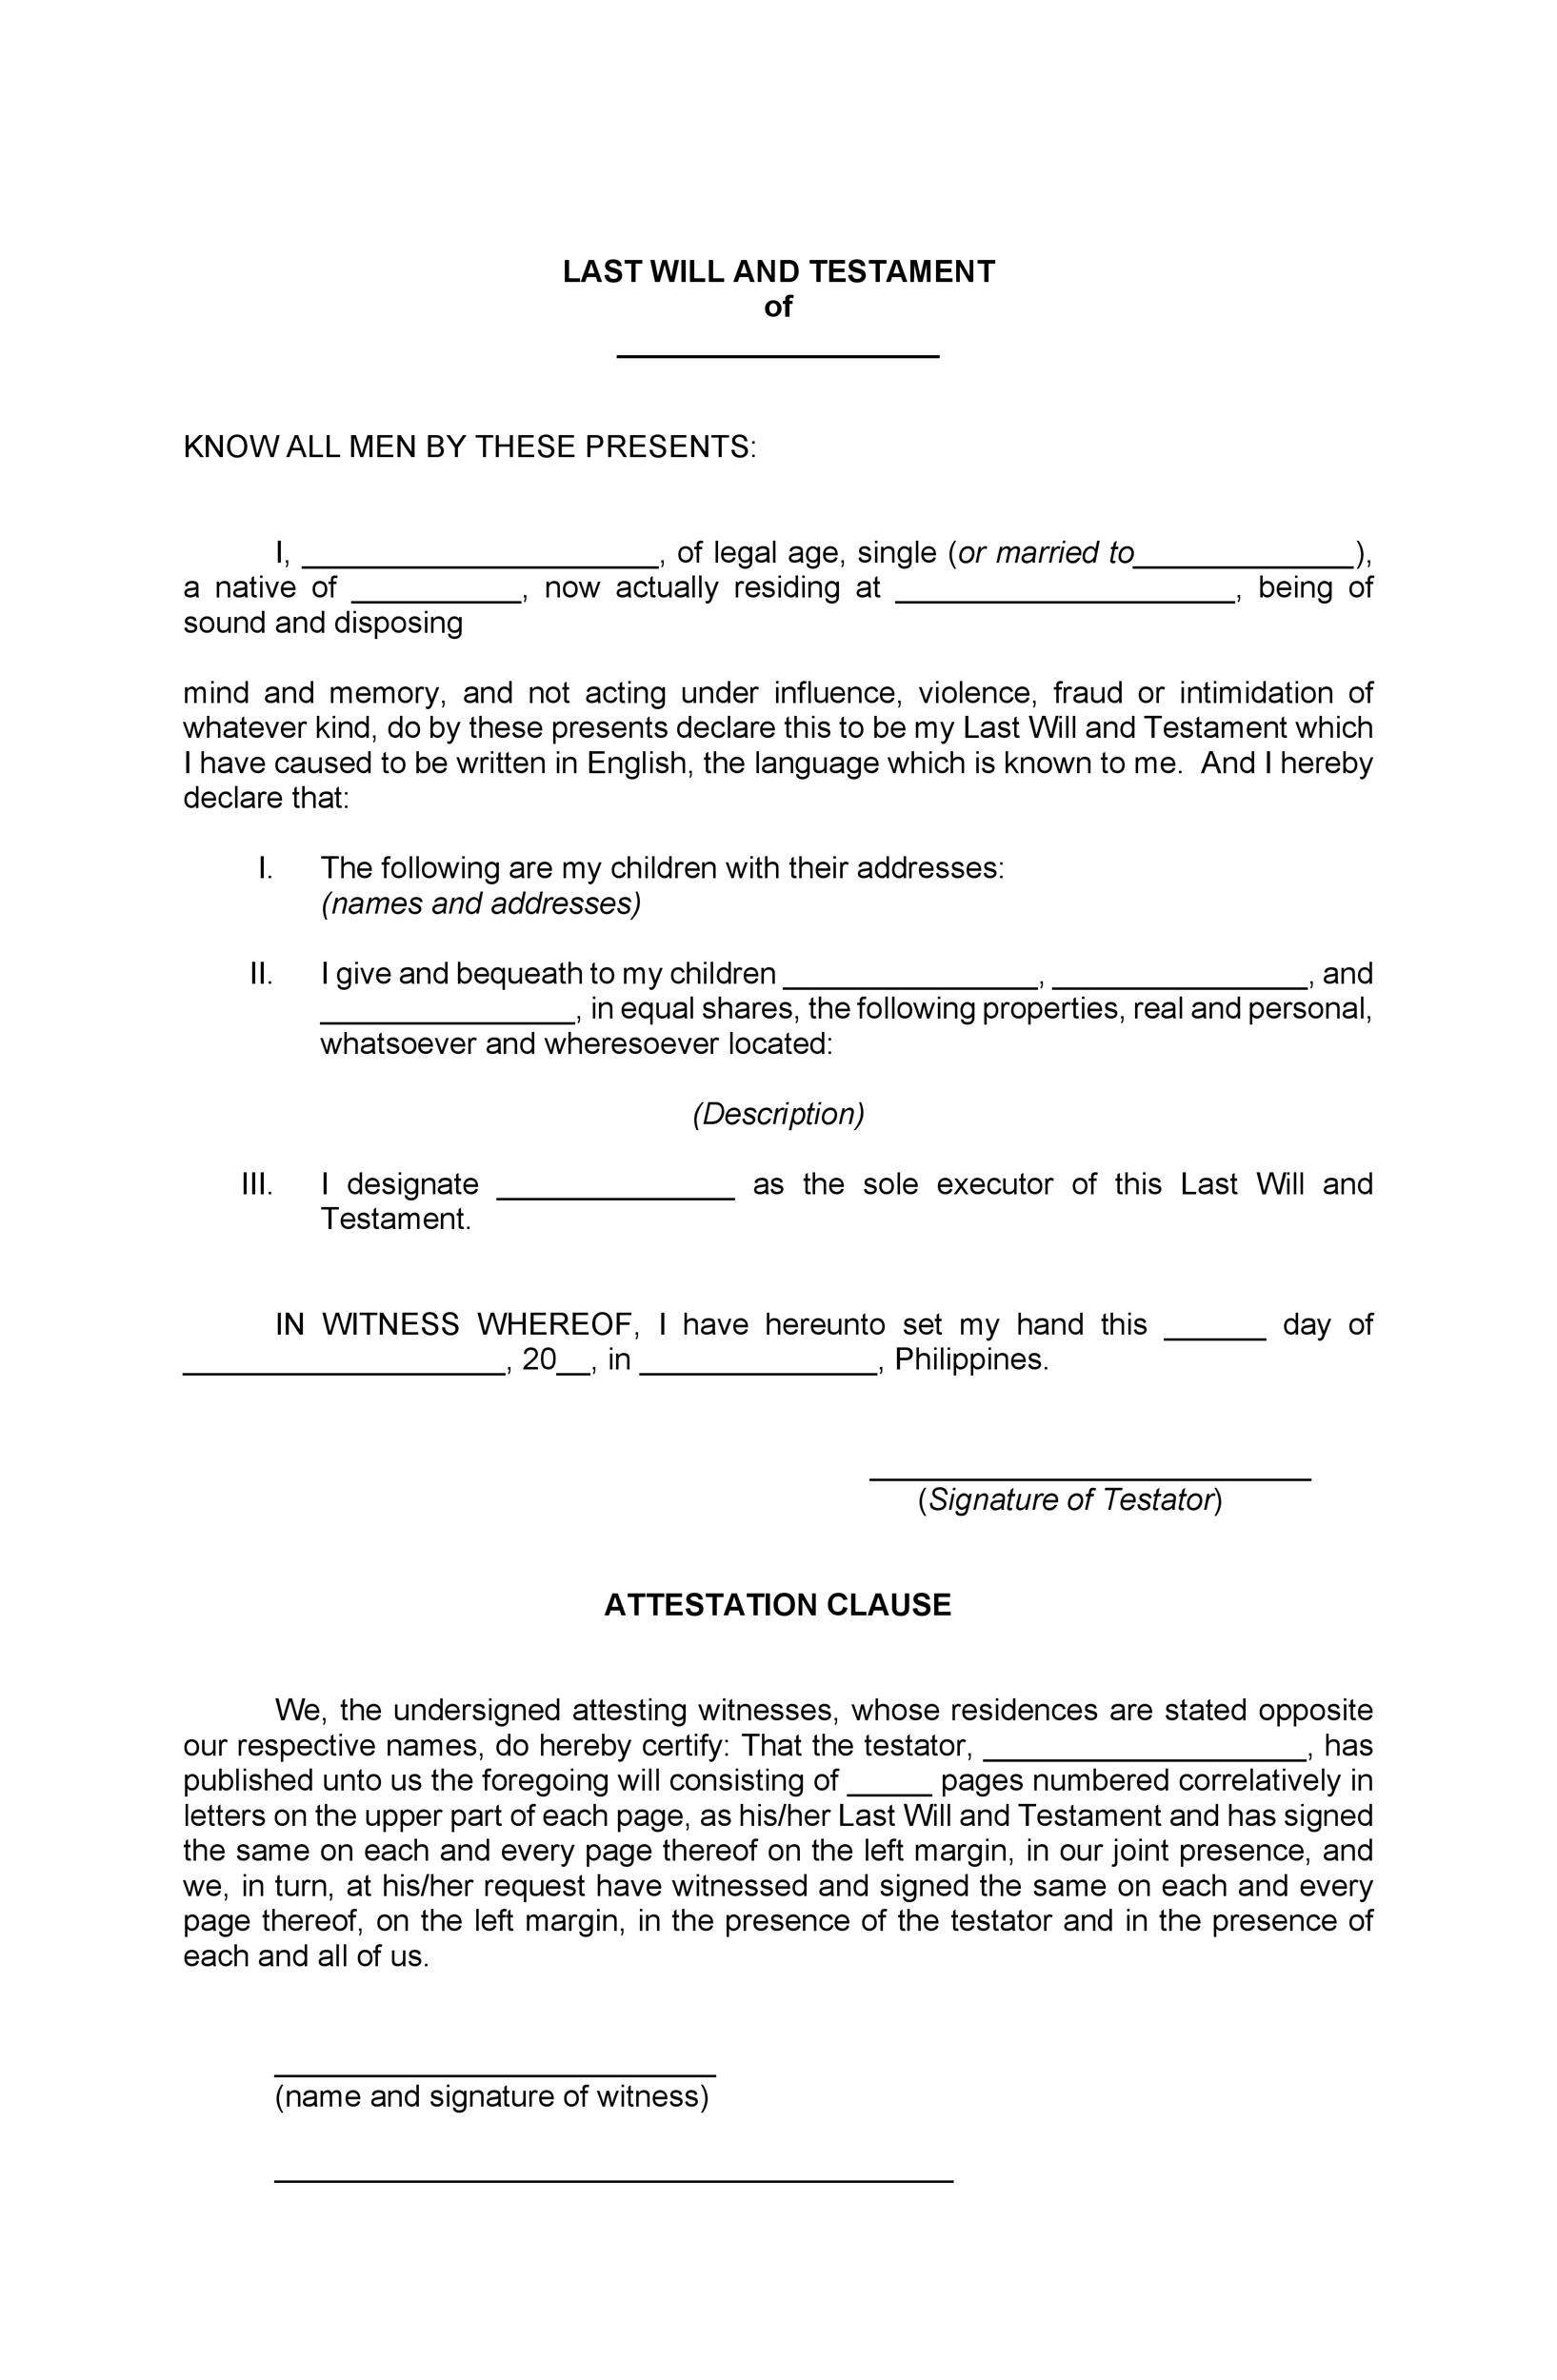 39 last will and testament forms templates template lab for Last will and testament free template maryland